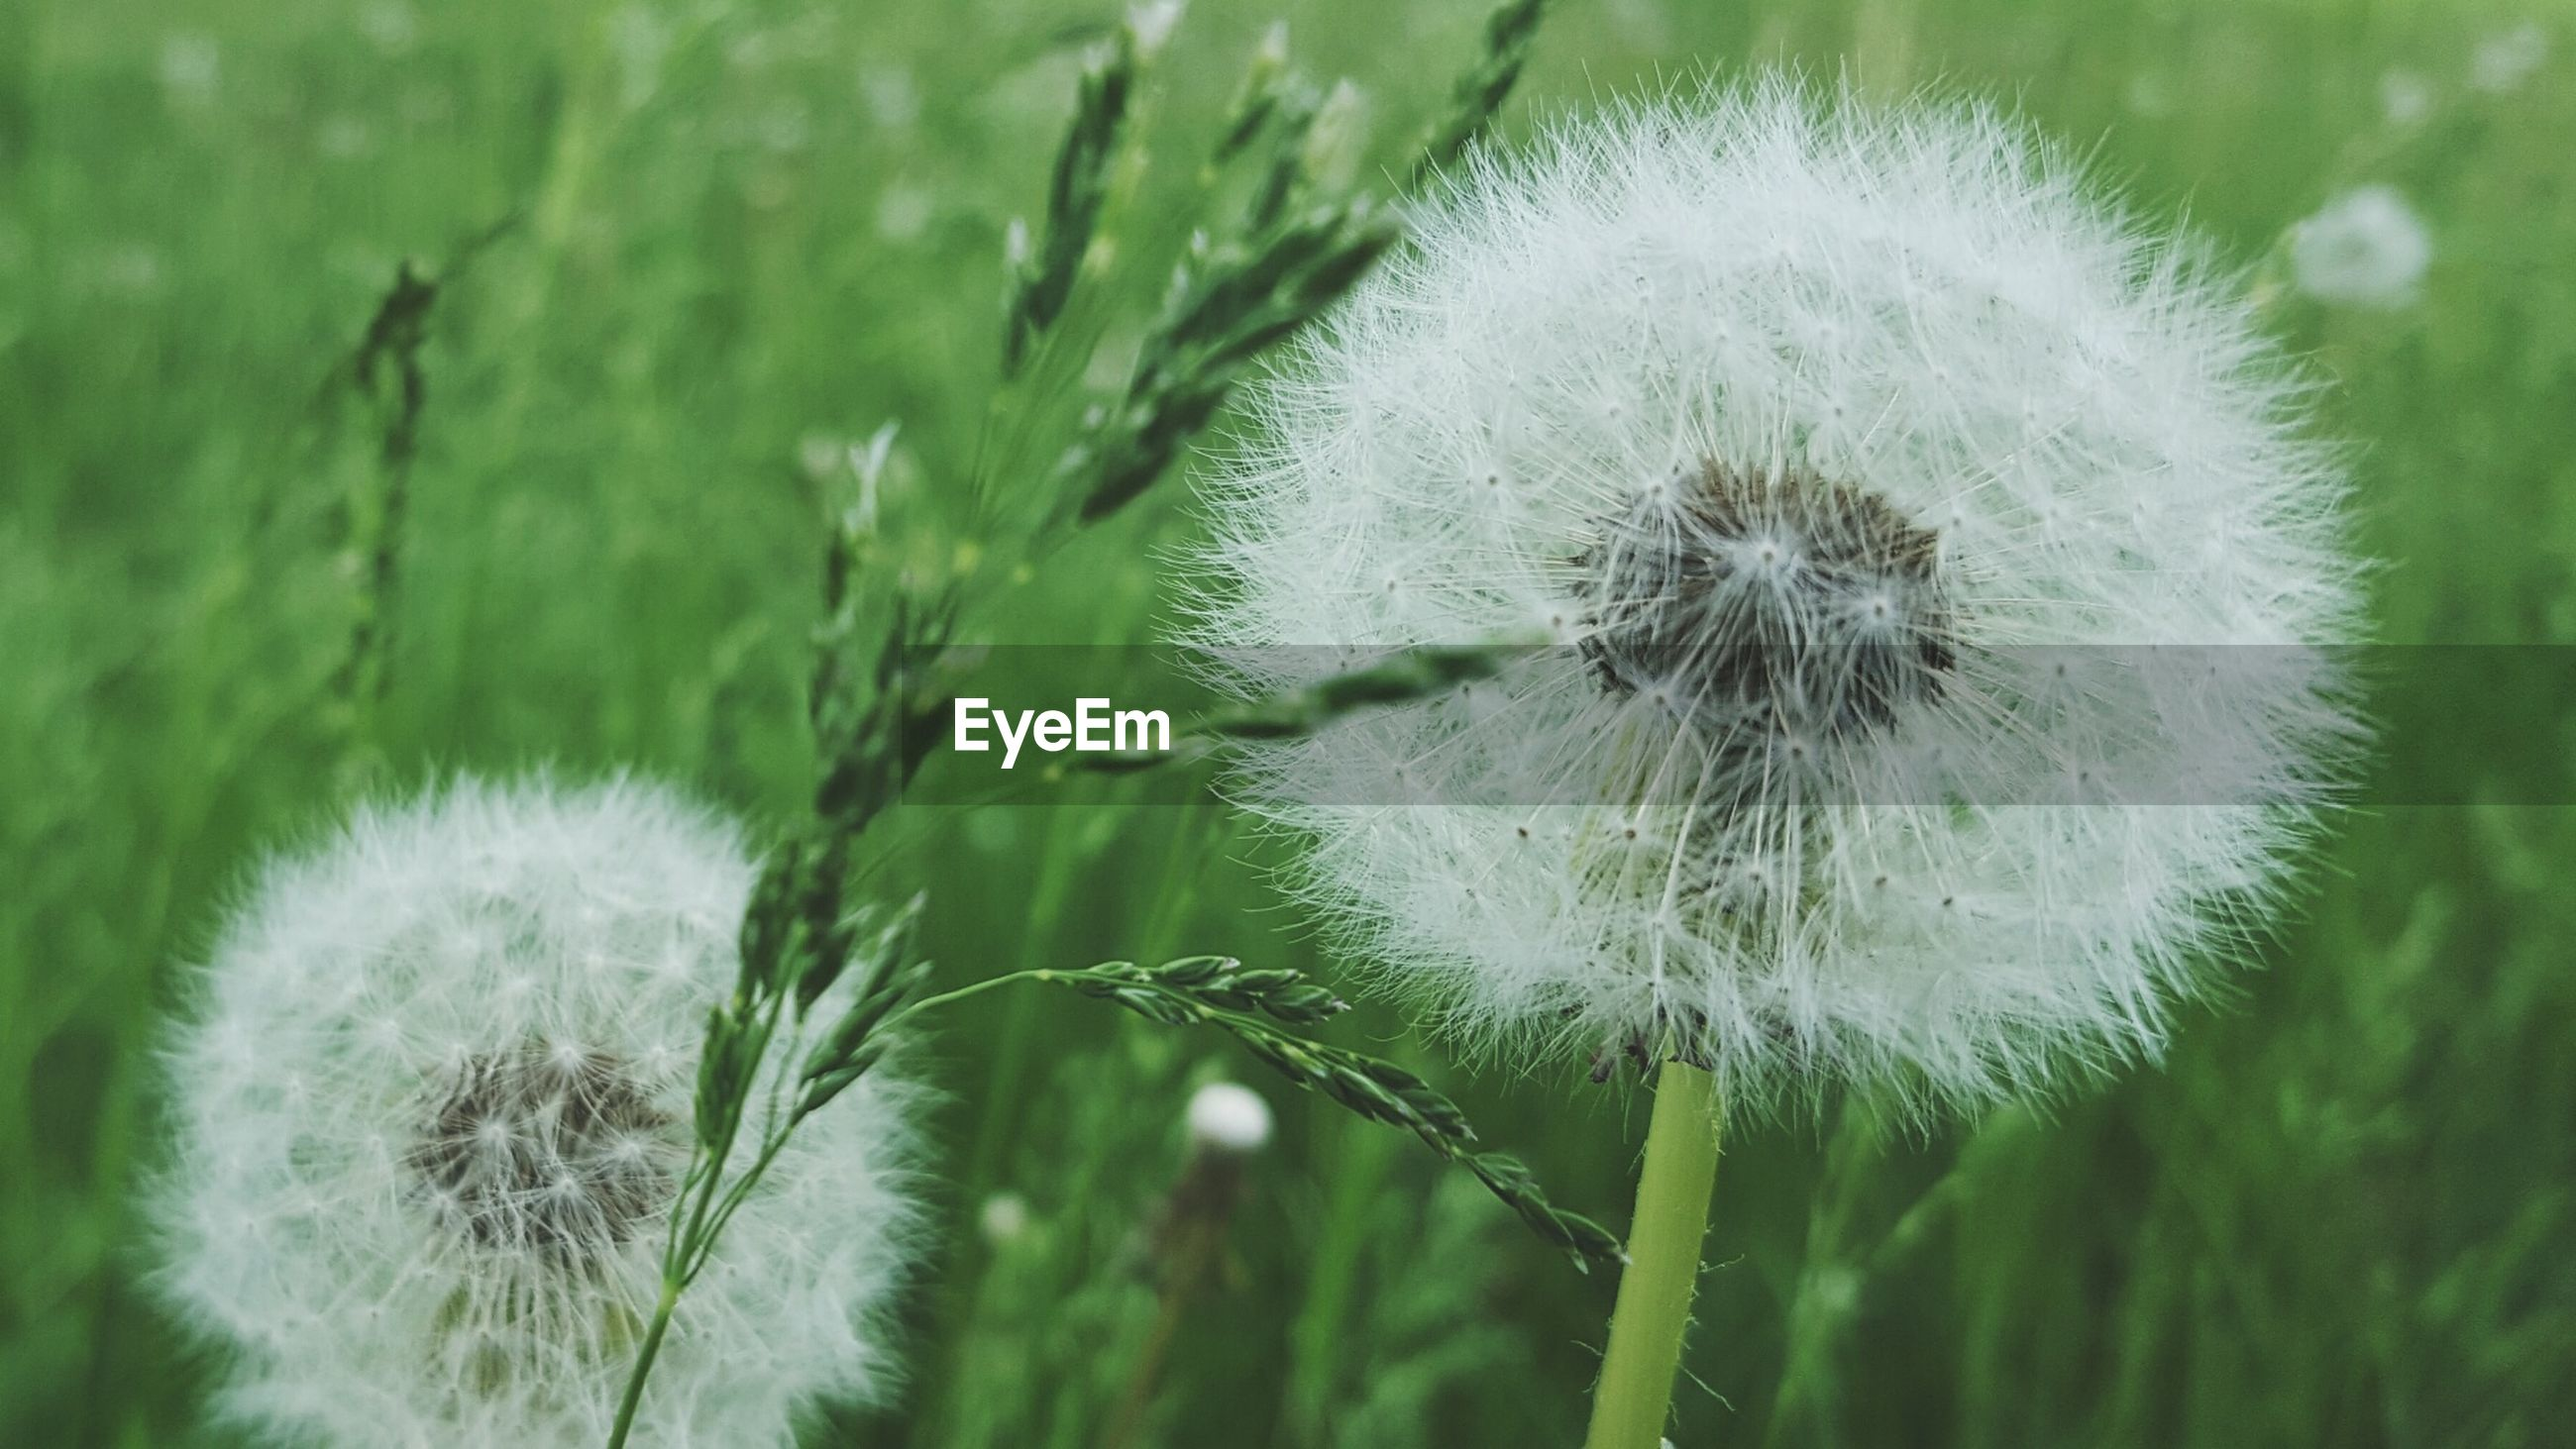 dandelion, flower, growth, fragility, freshness, beauty in nature, flower head, close-up, nature, focus on foreground, softness, plant, stem, wildflower, uncultivated, white color, single flower, field, day, outdoors